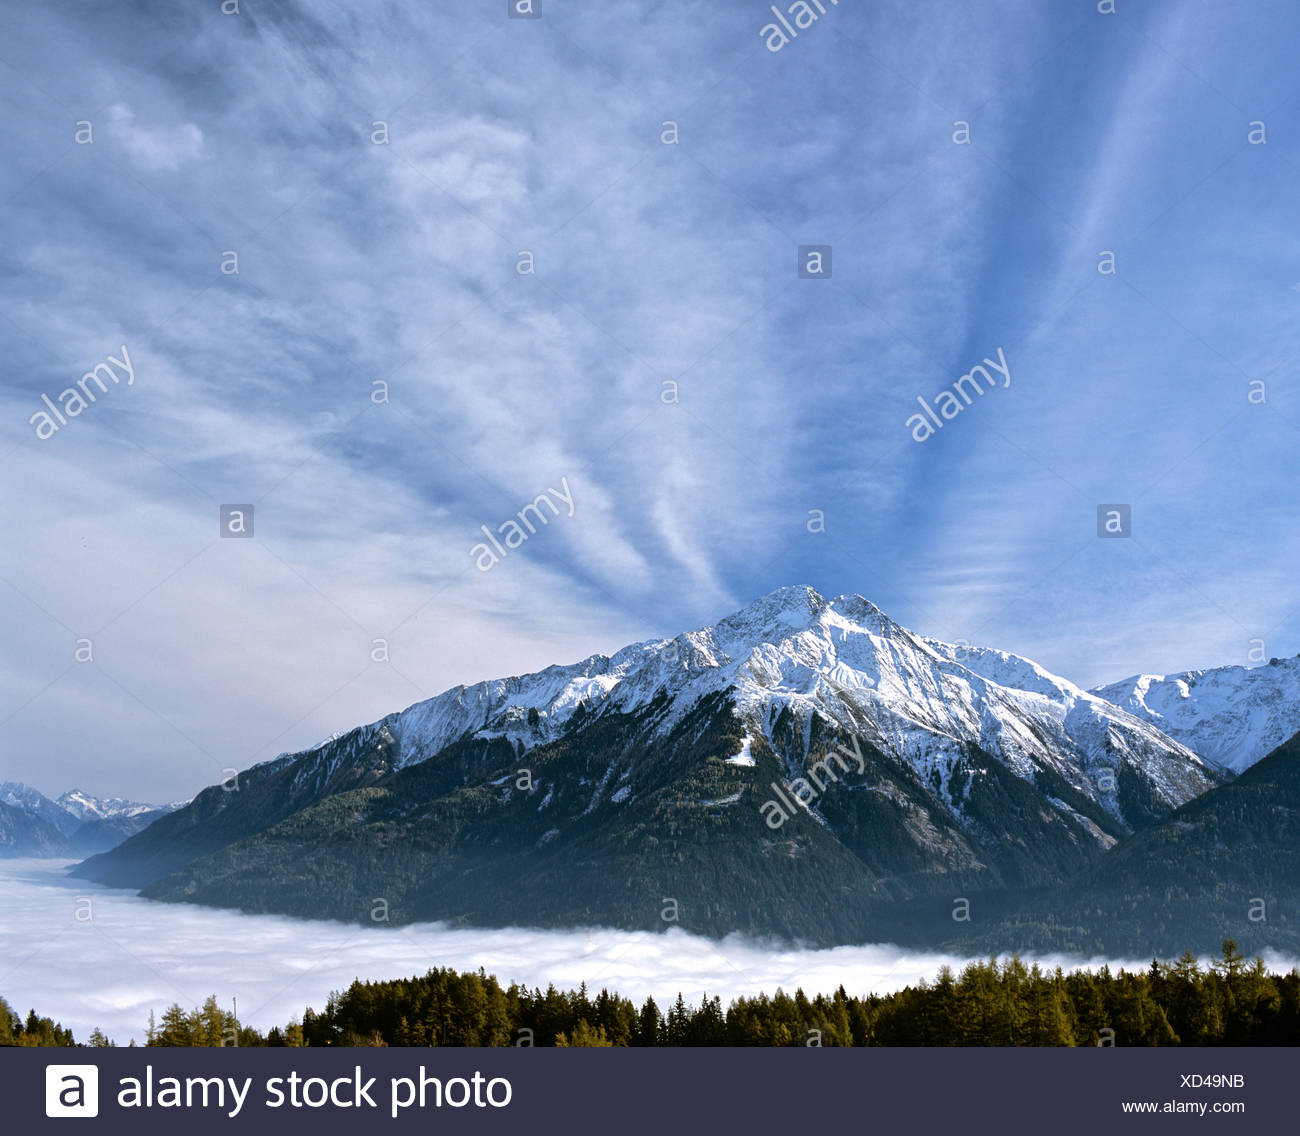 Mt. Hocheder viewed from Moesern, Inn Valley, Tyrol, Austria - Stock Image